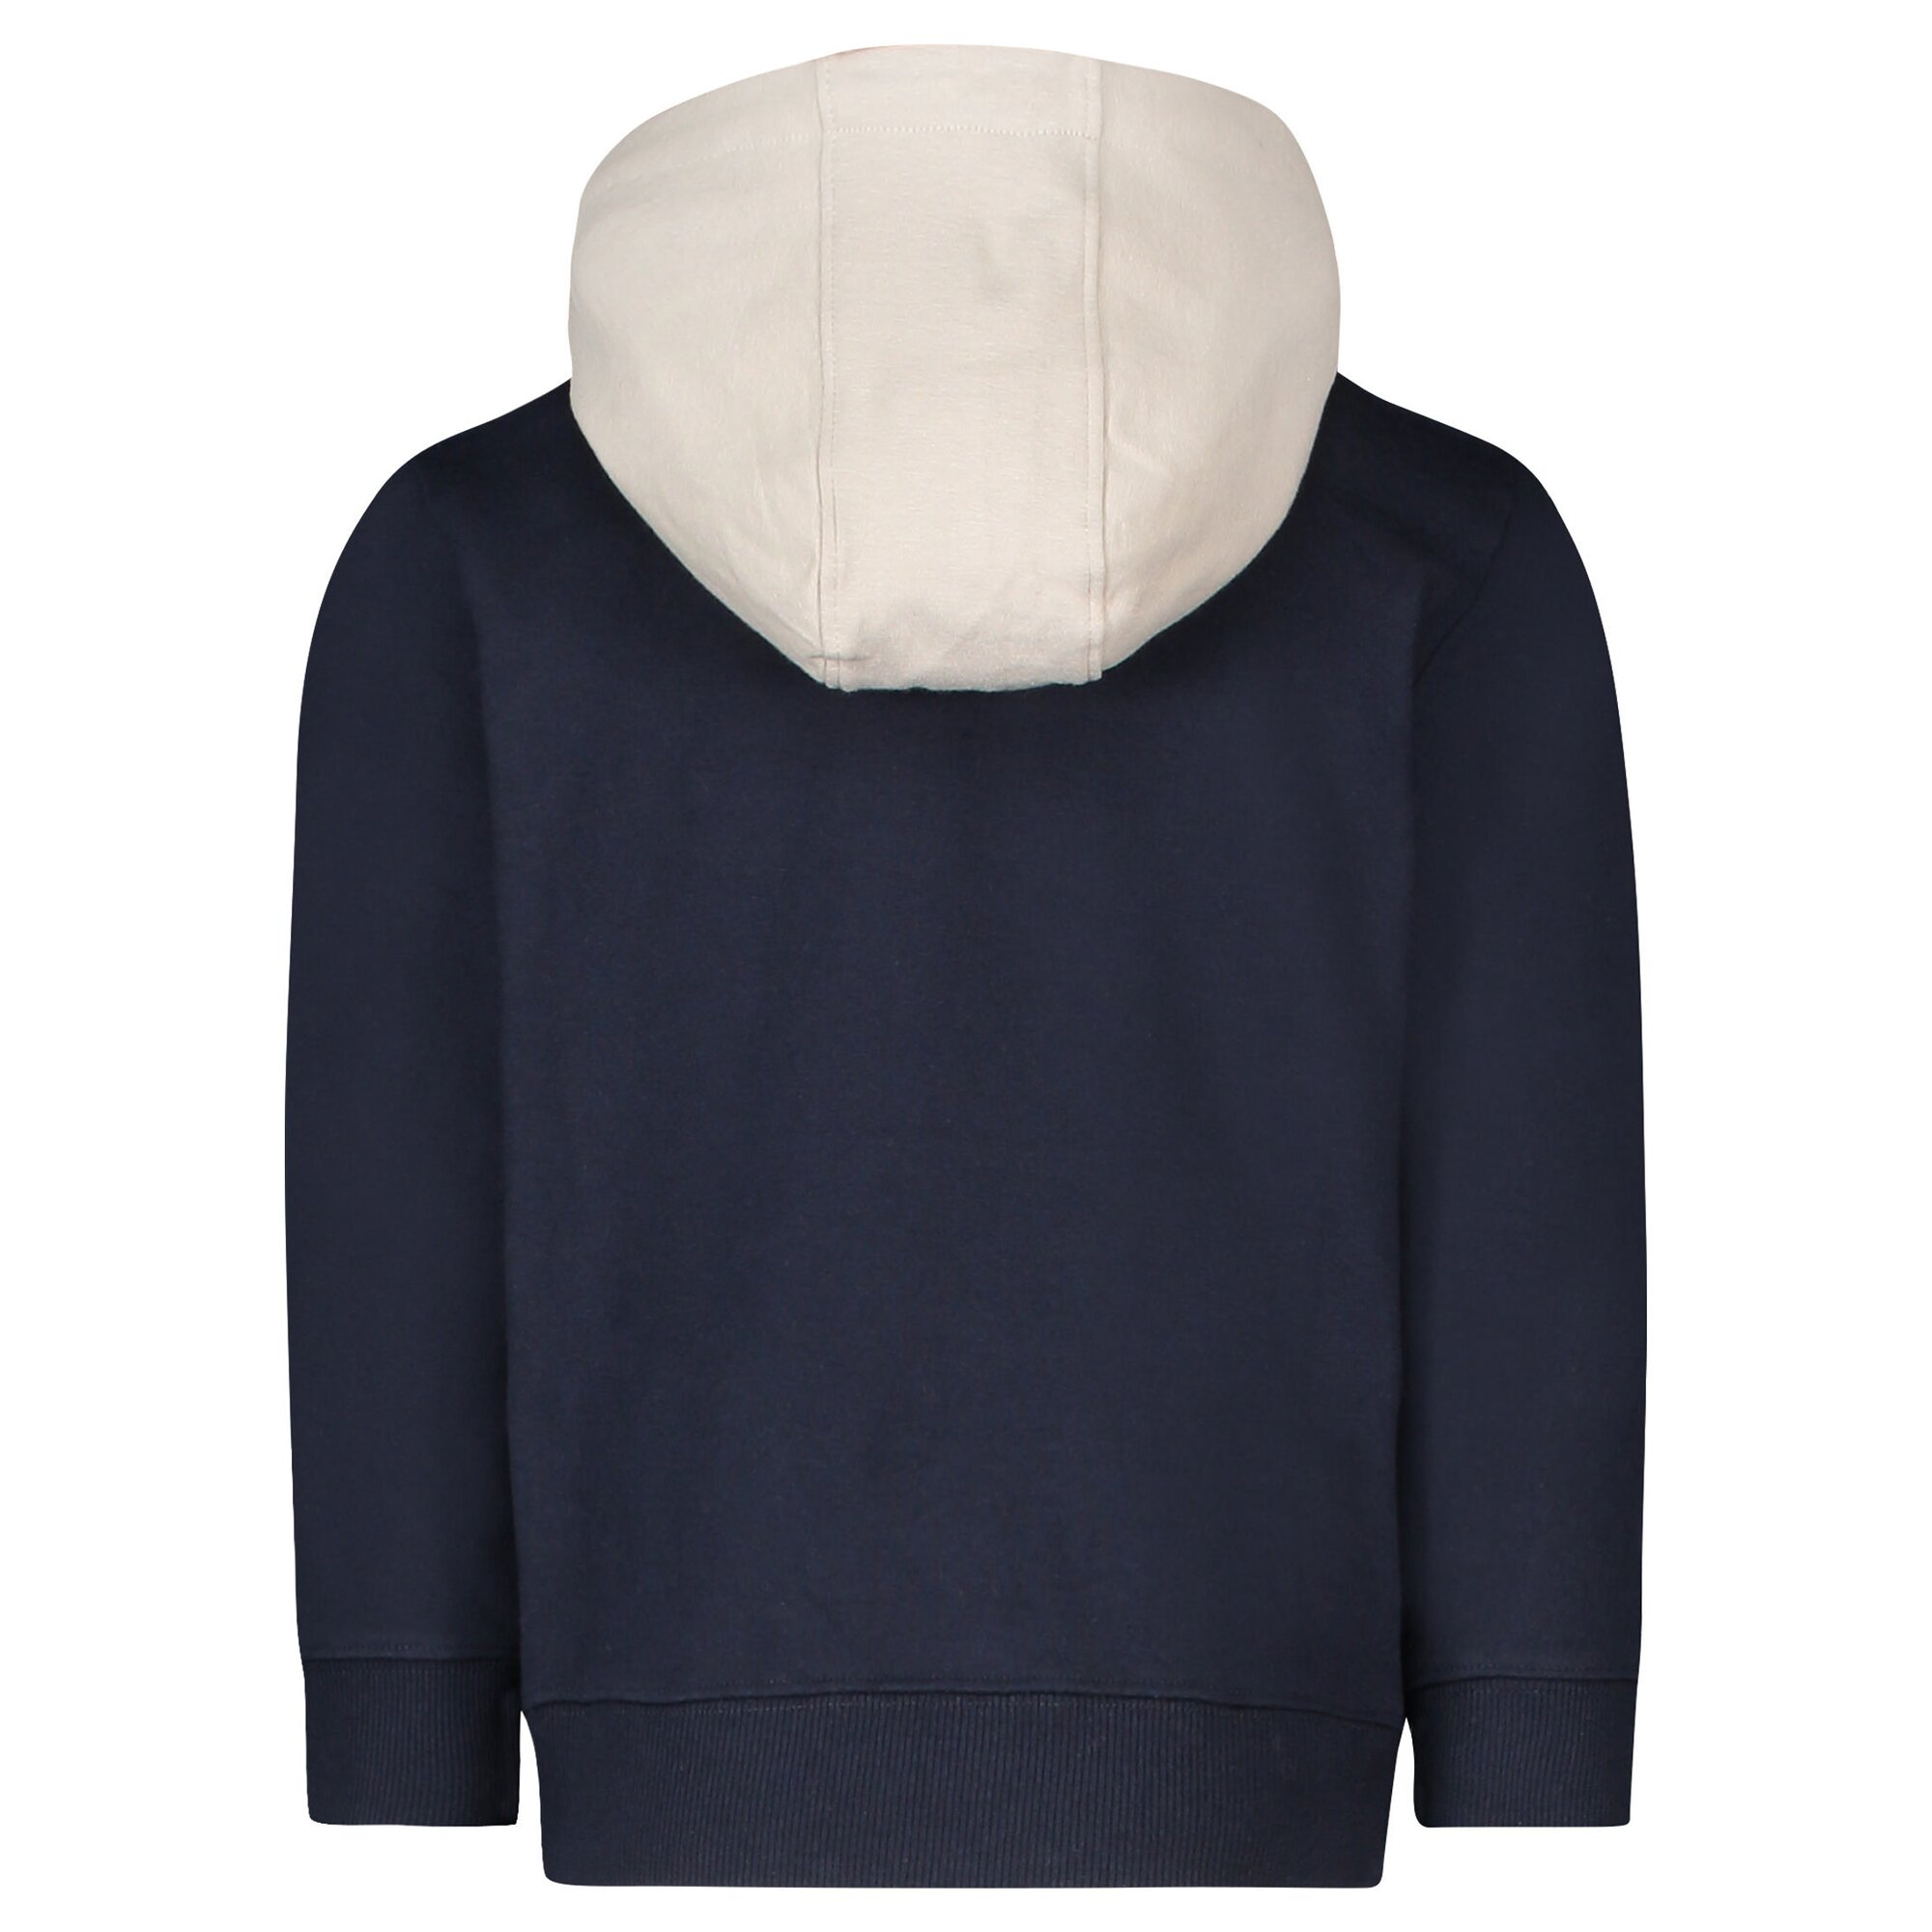 sweater-williamstown, 49.99 EUR @ babywalz-de